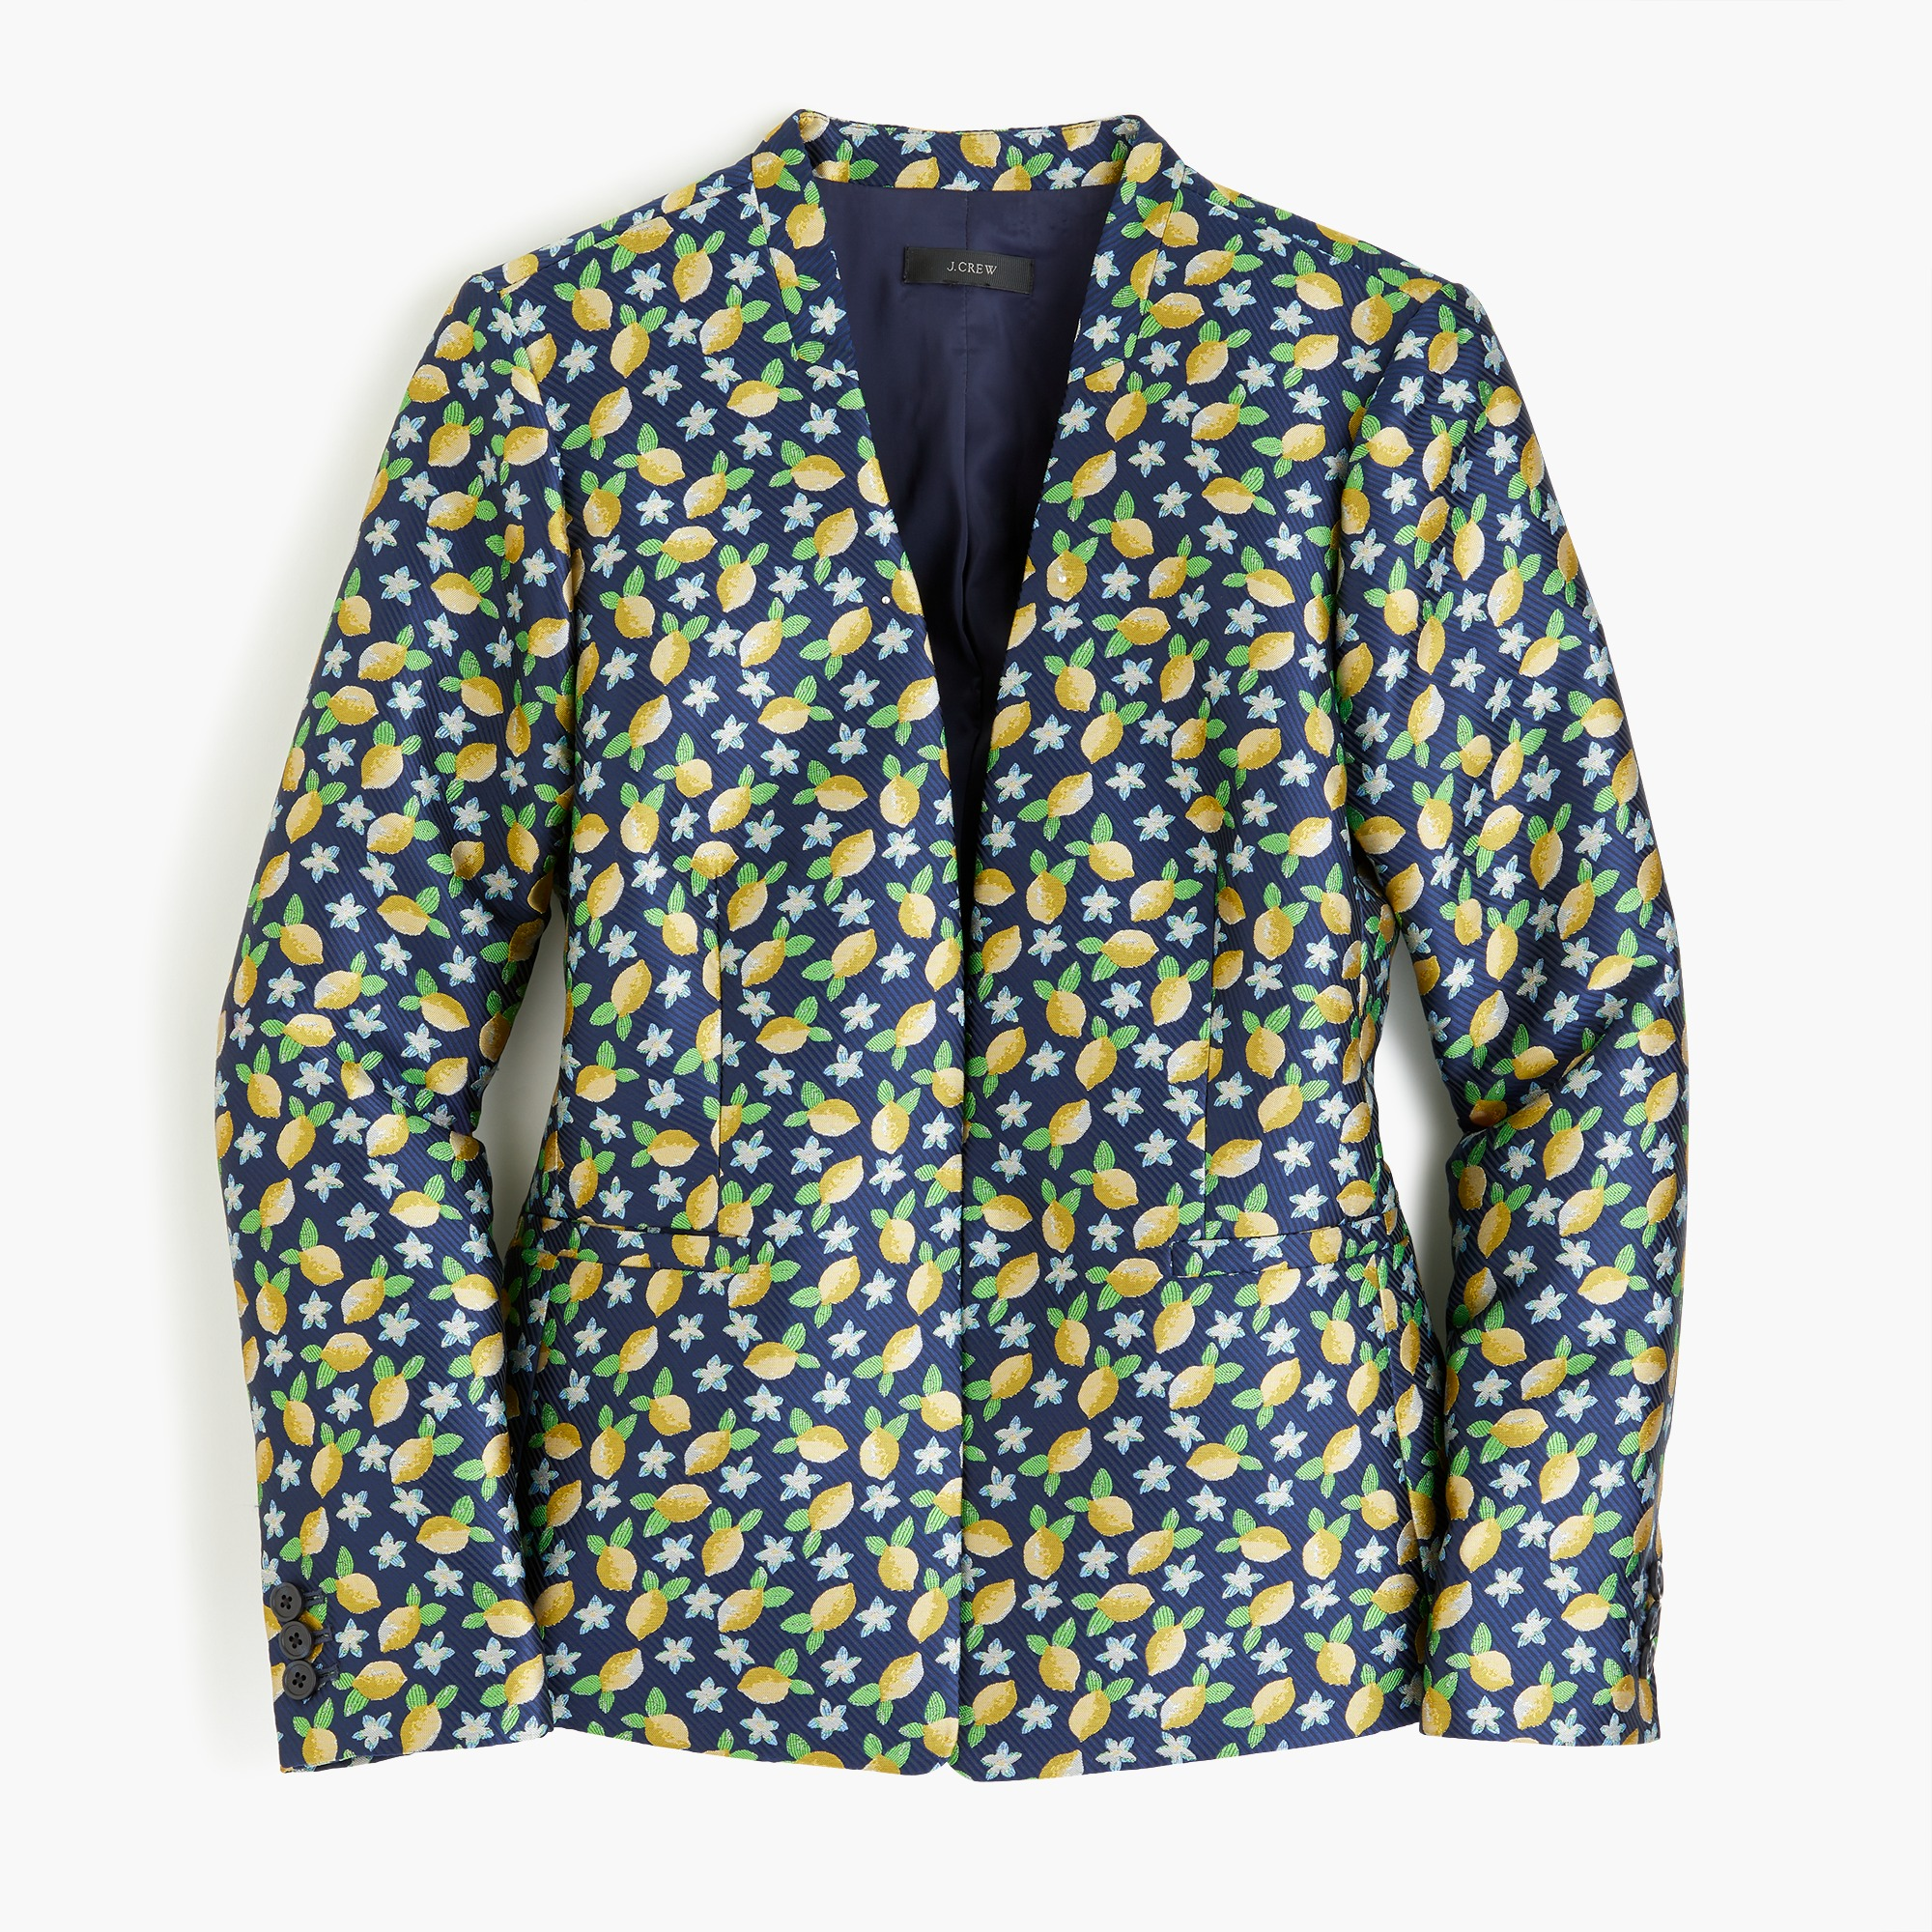 Tall going-out blazer in lemon jacquard